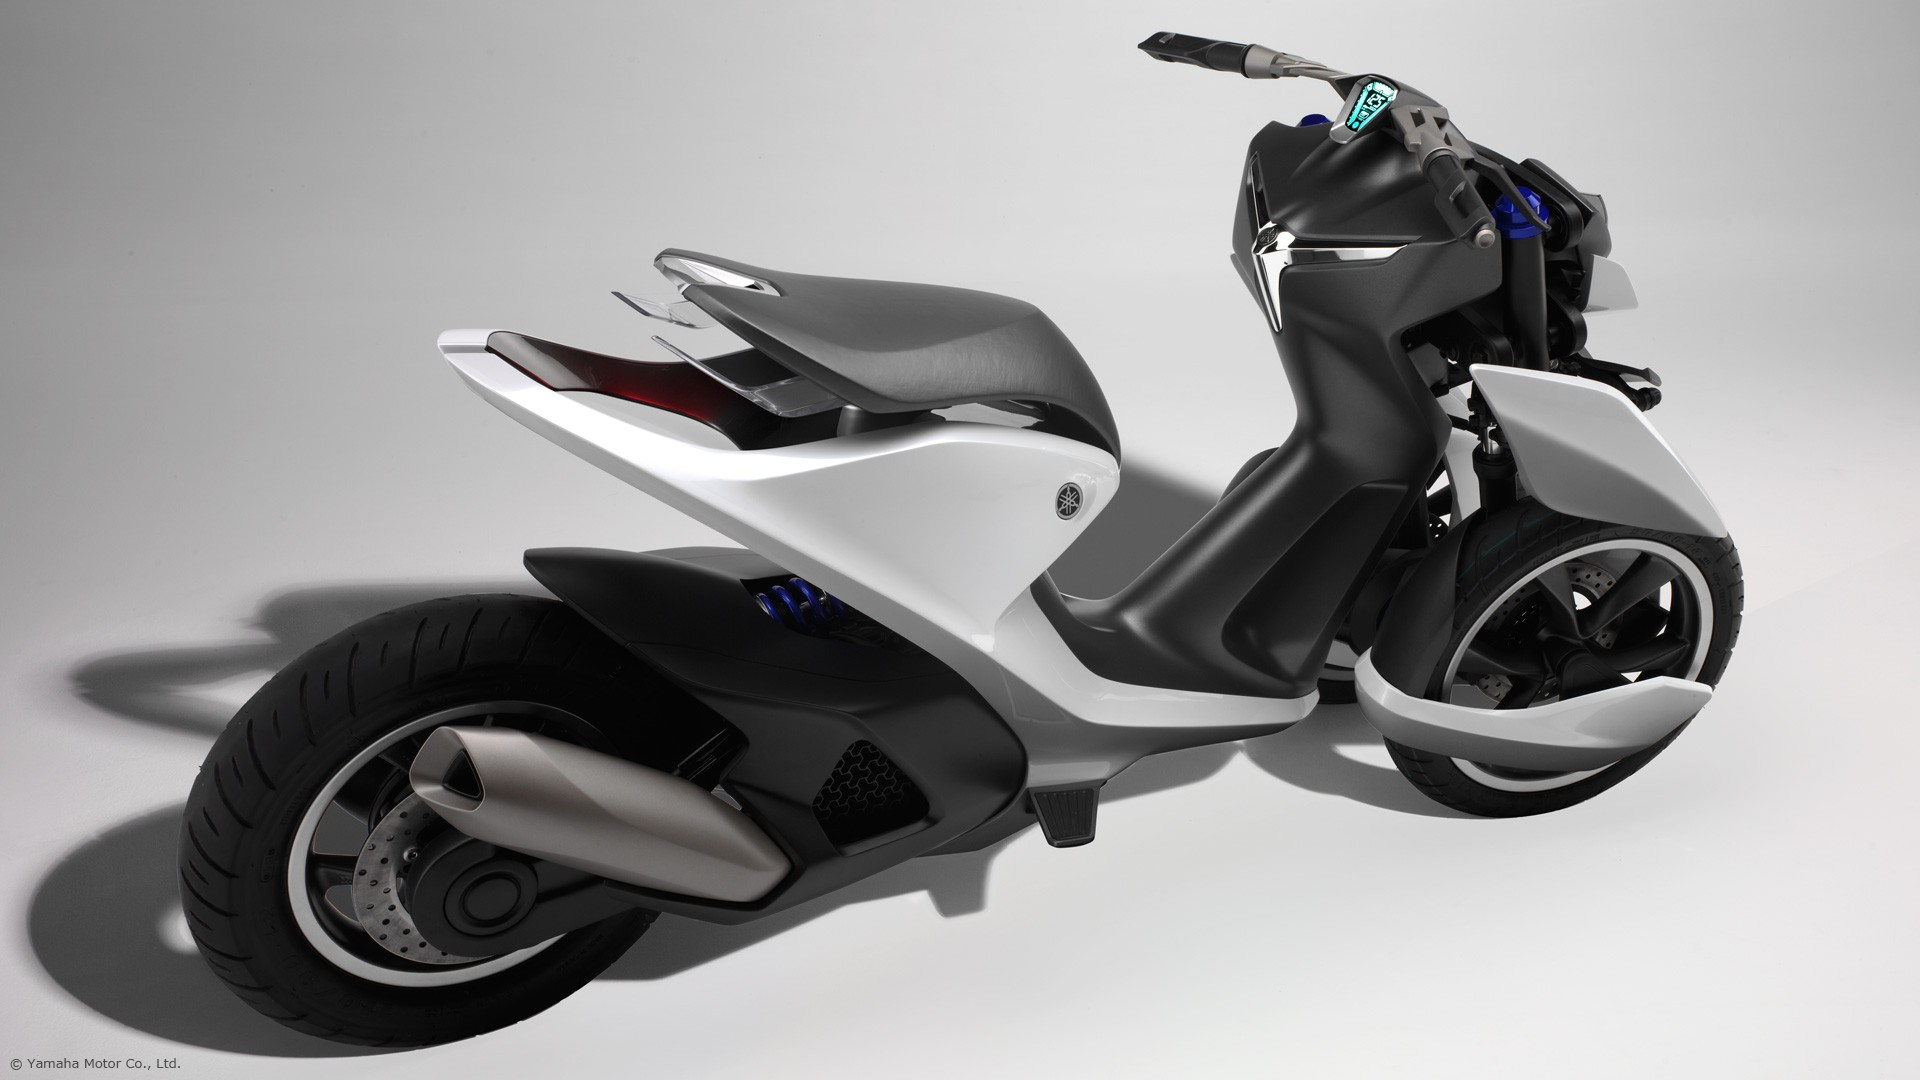 Yamaha Shows 03GEN Three-Wheeled Scooter Concepts